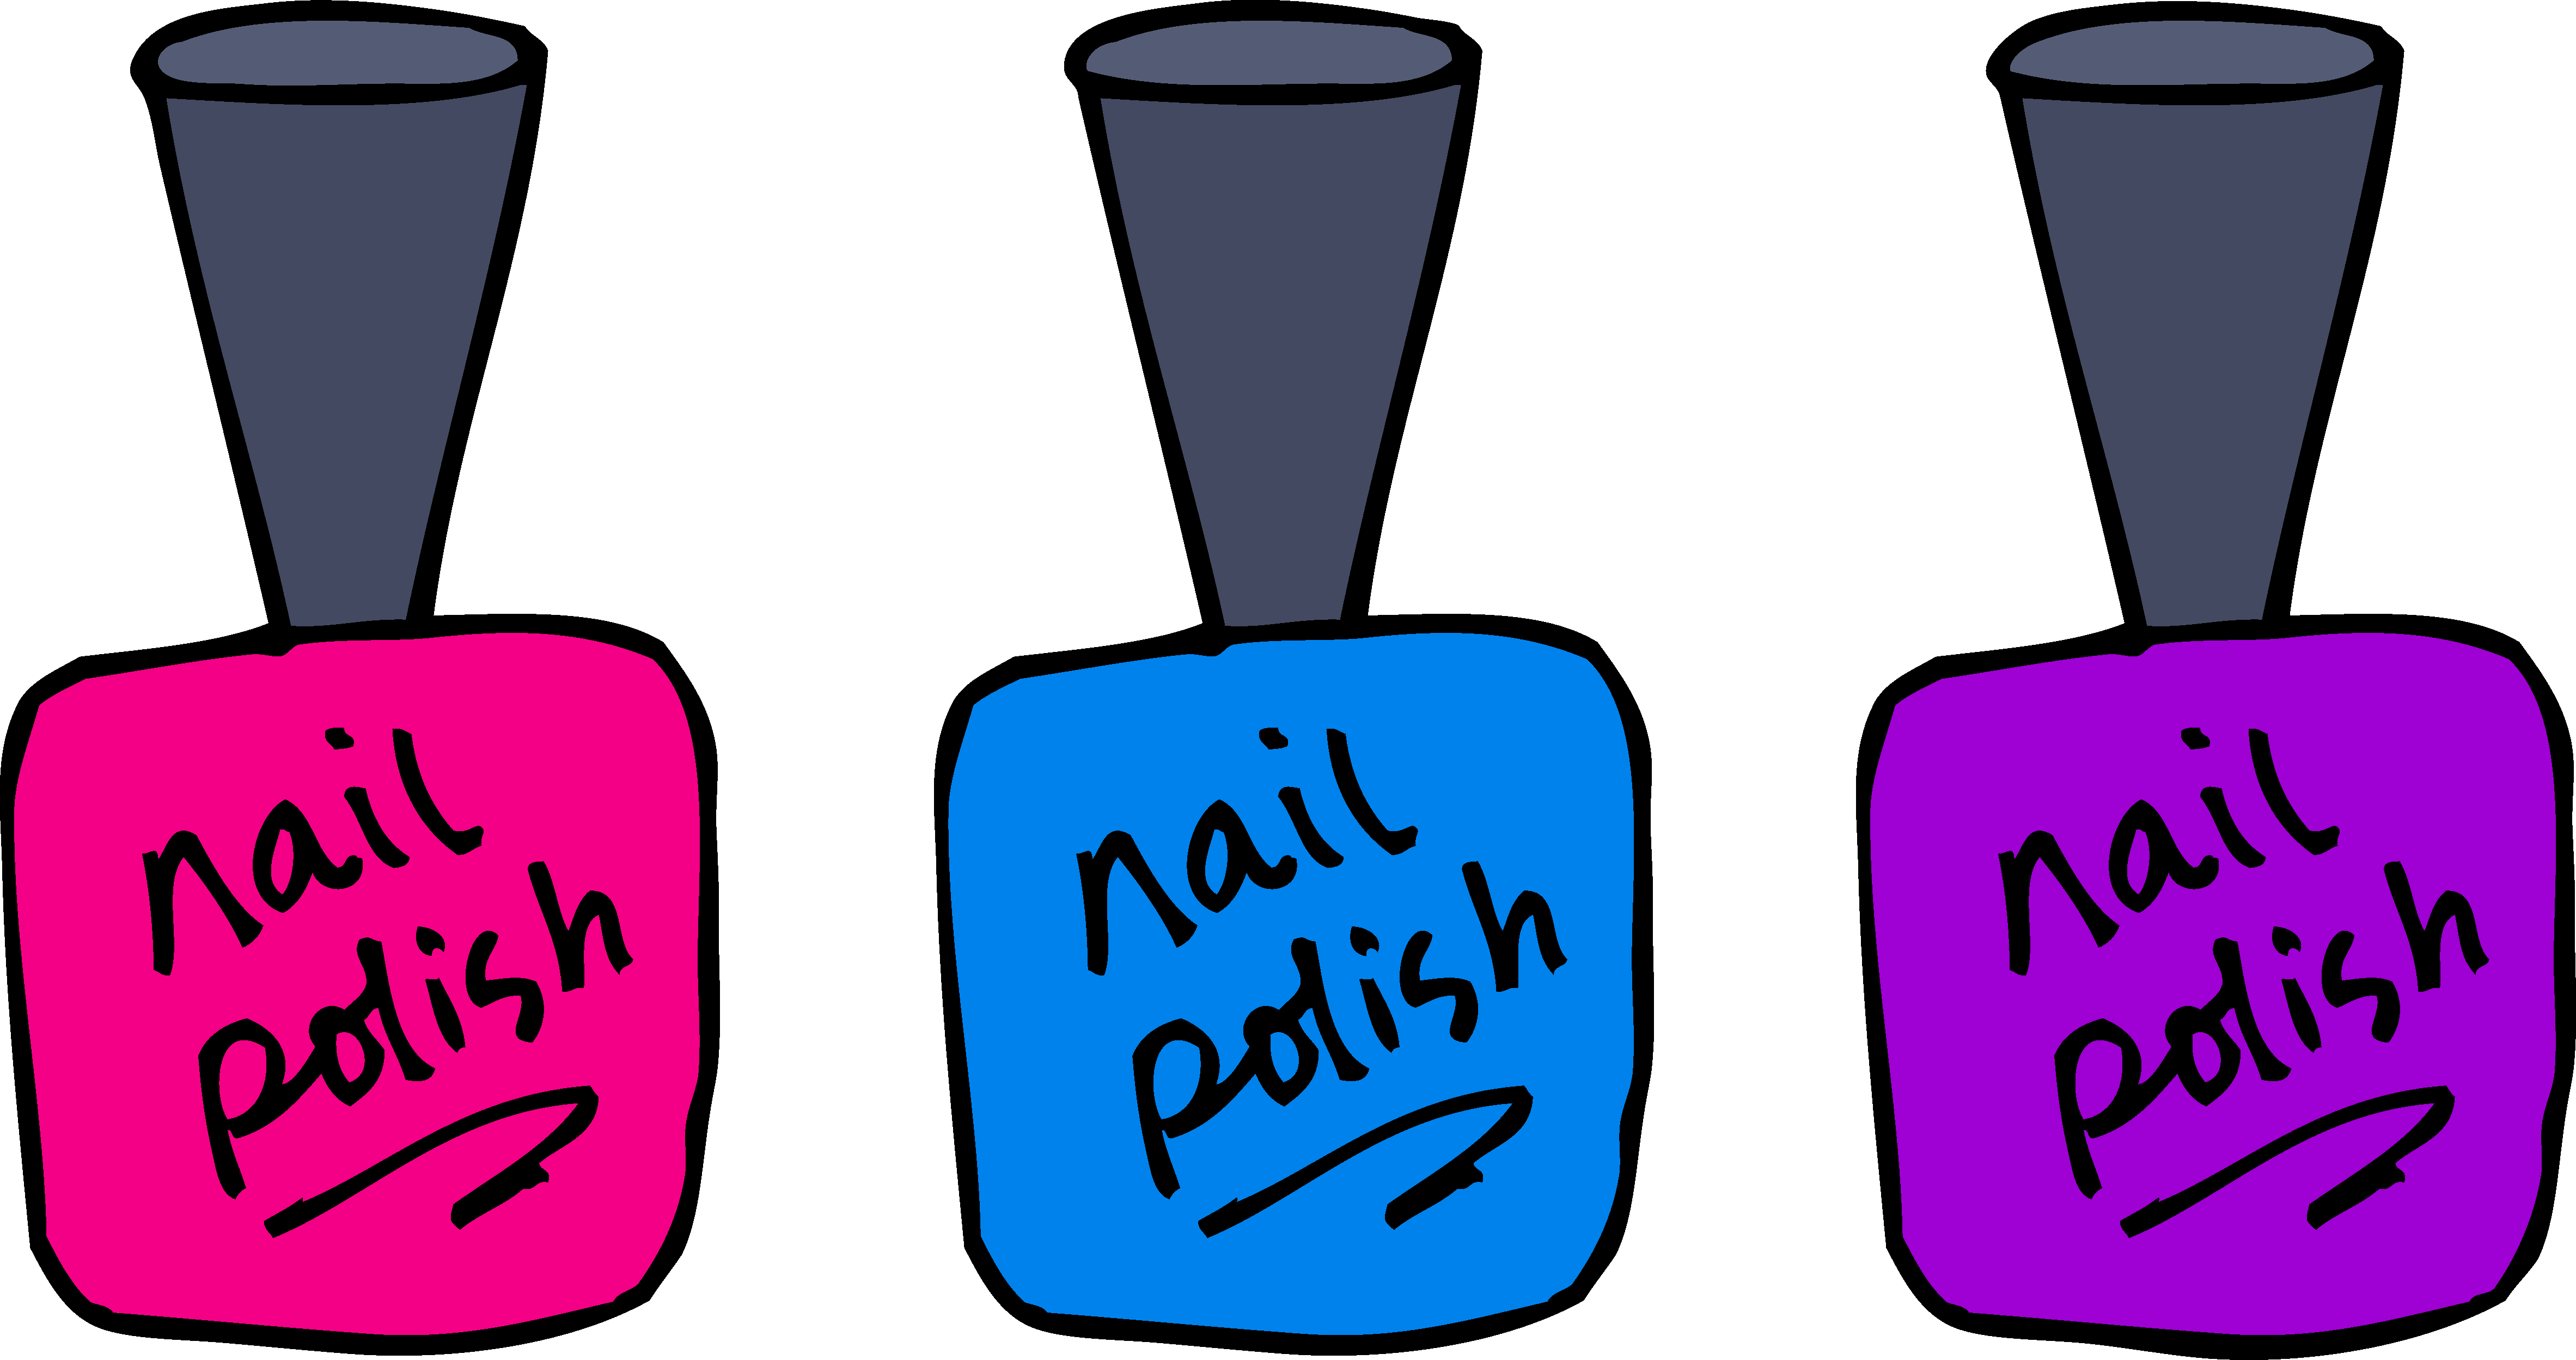 Nail Trends 2014 Wallpaper